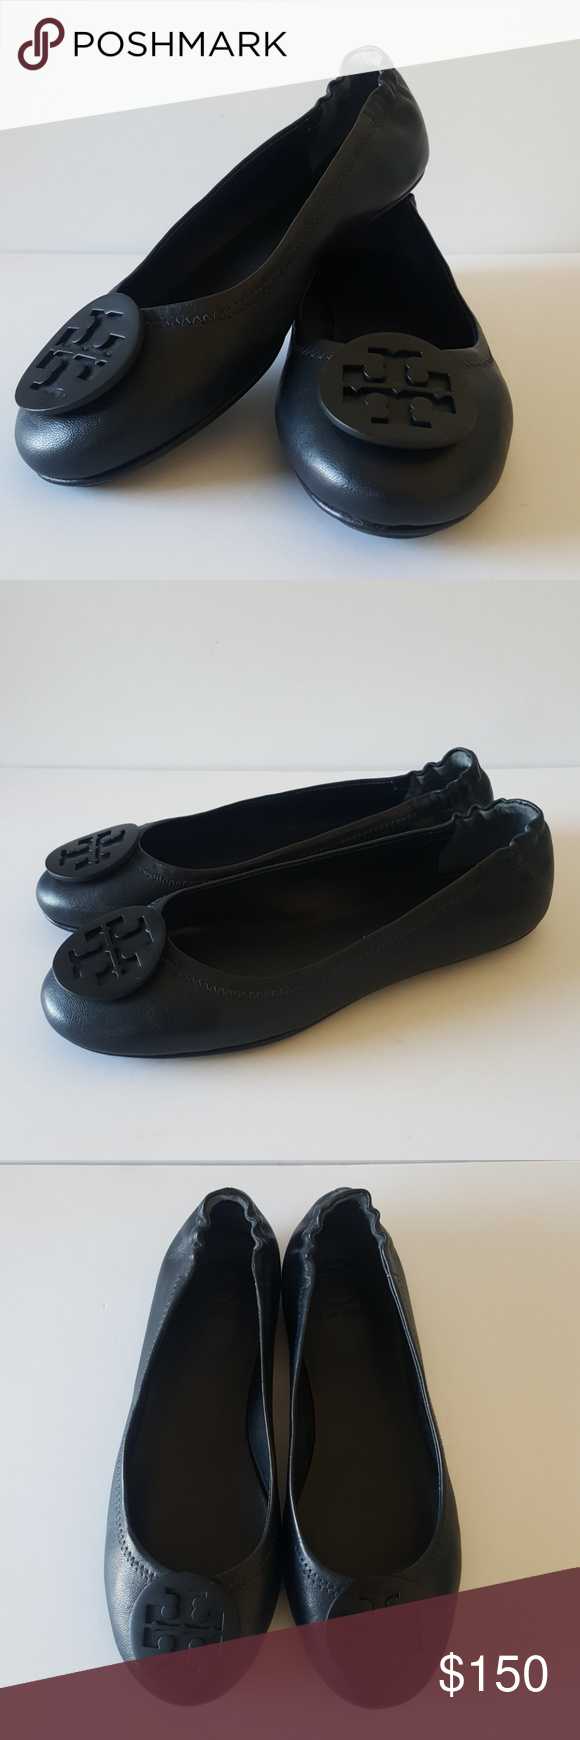 65e9d4343 I just added this listing on Poshmark  Tory Burch Minnie Travel Ballet Flats.   shopmycloset  poshmark  fashion  shopping  style  forsale  Tory Burch   Shoes